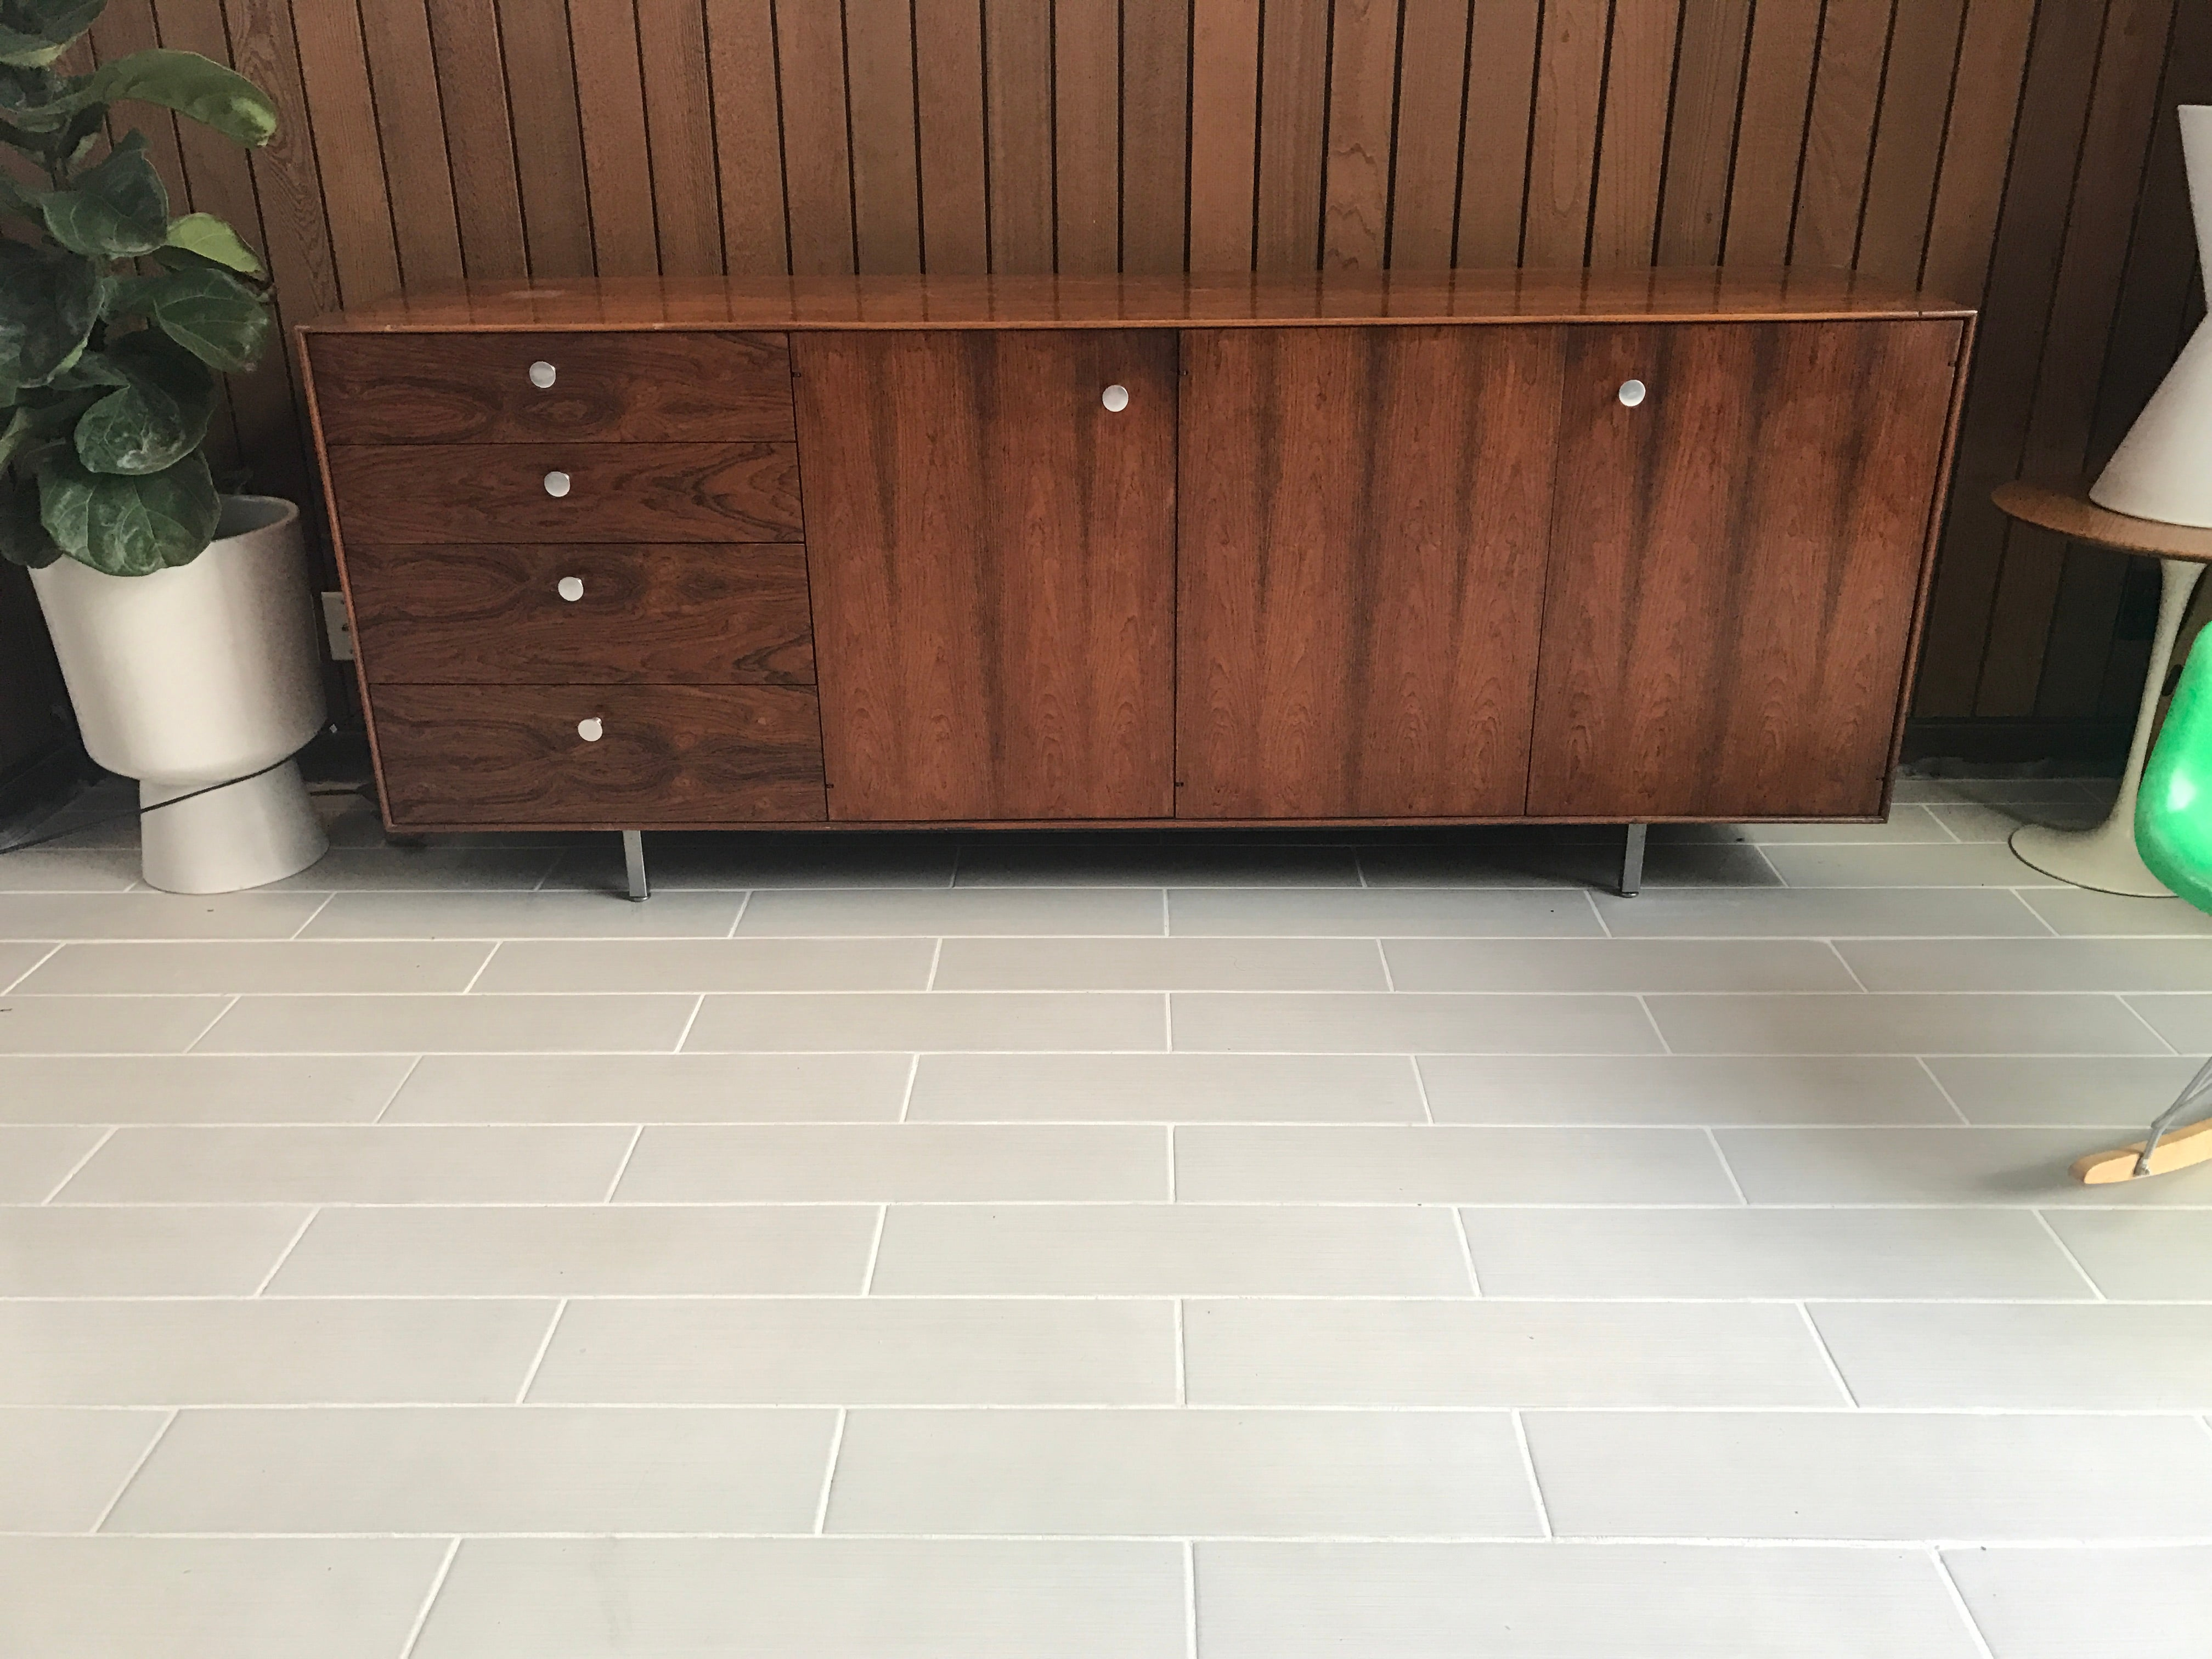 Large George Nelson Rosewood Thin Edge Credenza Sideboard Cabinet Buffet